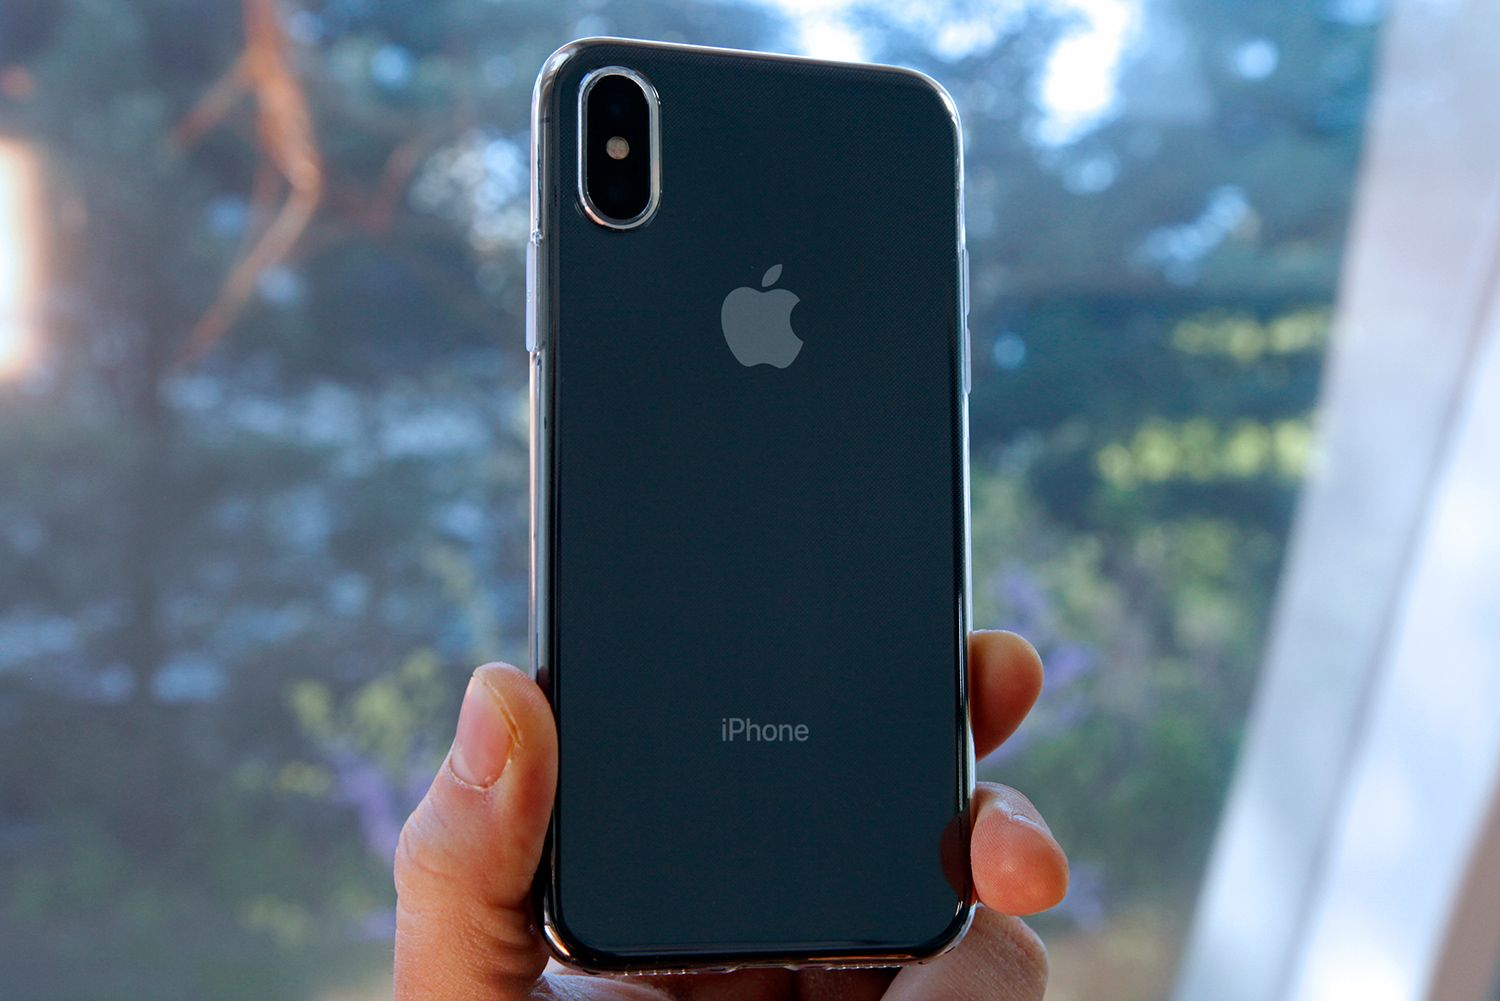 It only cost me 20 to make my iphone x look better than